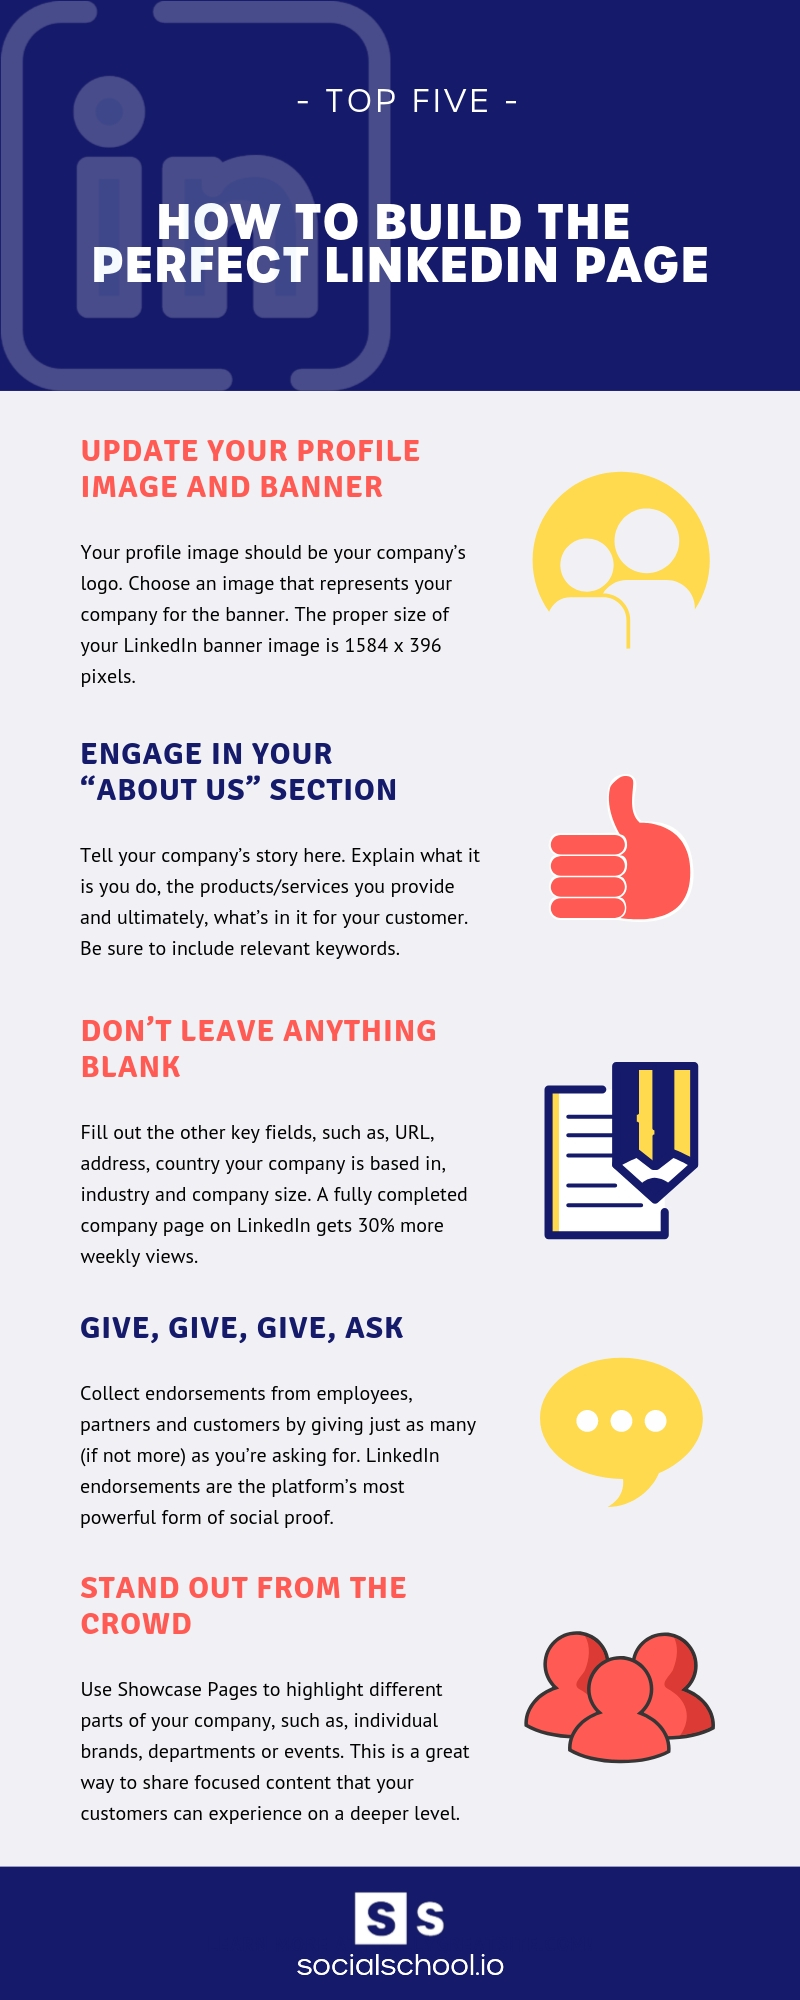 HOW TO BUILD THE PERFECT LINKEDIN PAGE.jpg